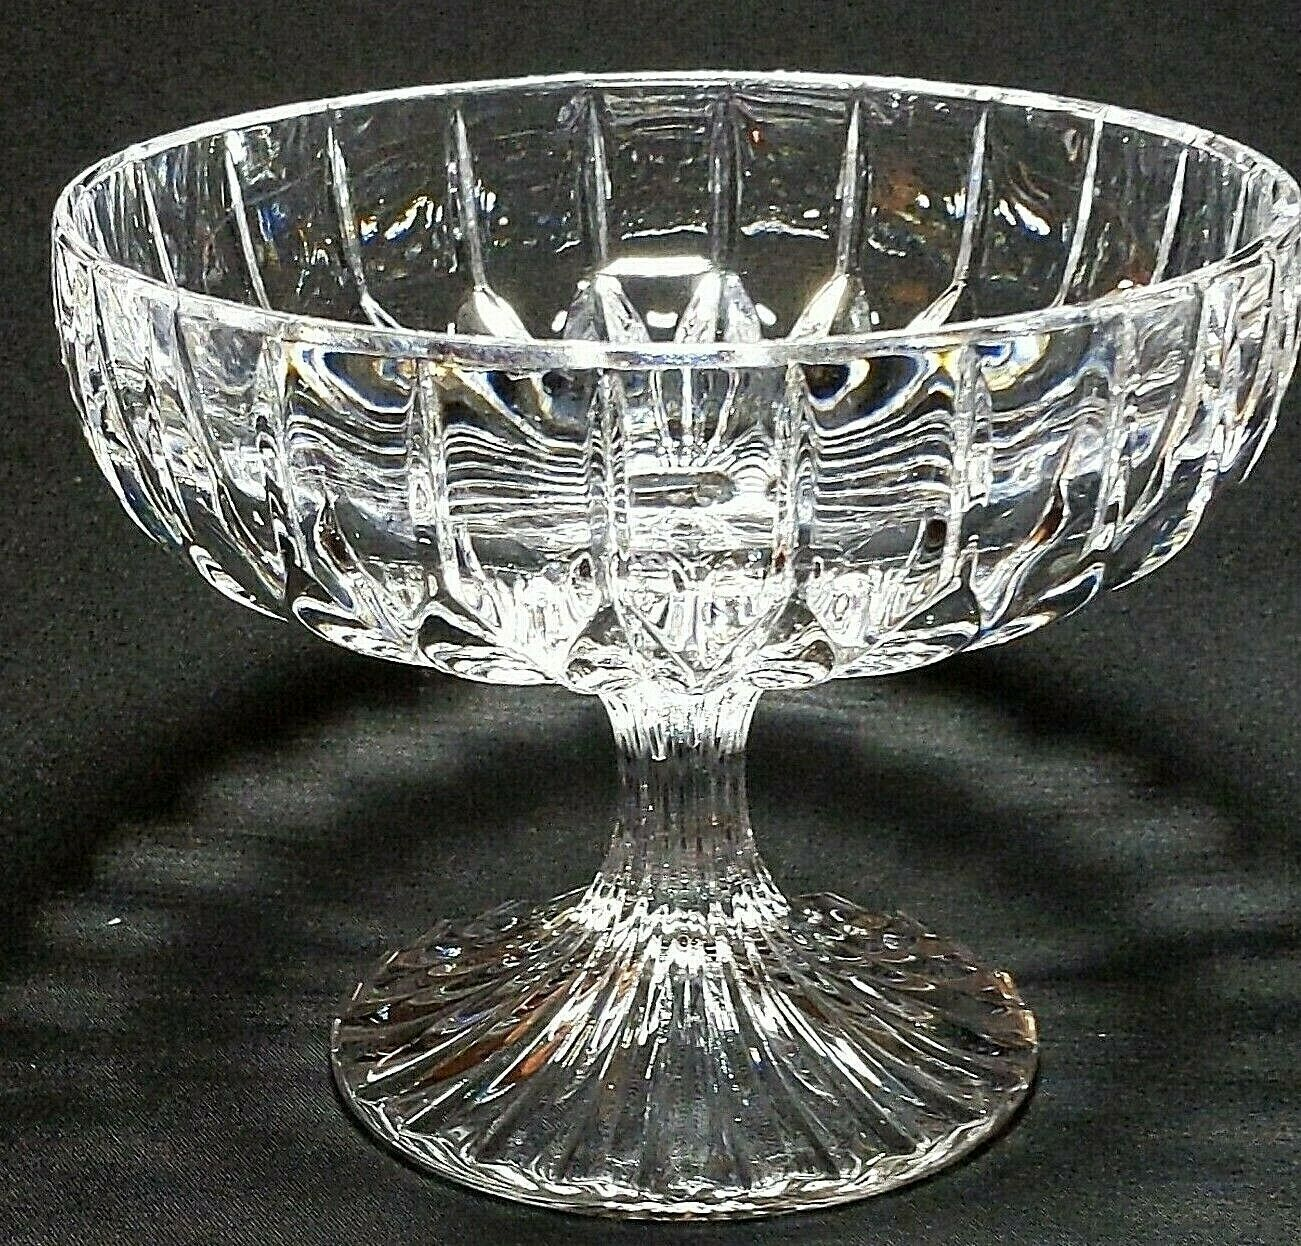 "Primary image for 1 (One) MIKASA PARK LANE Cut Lead Crystal Compote Height: 4 1/8"" DISCONTINUED"